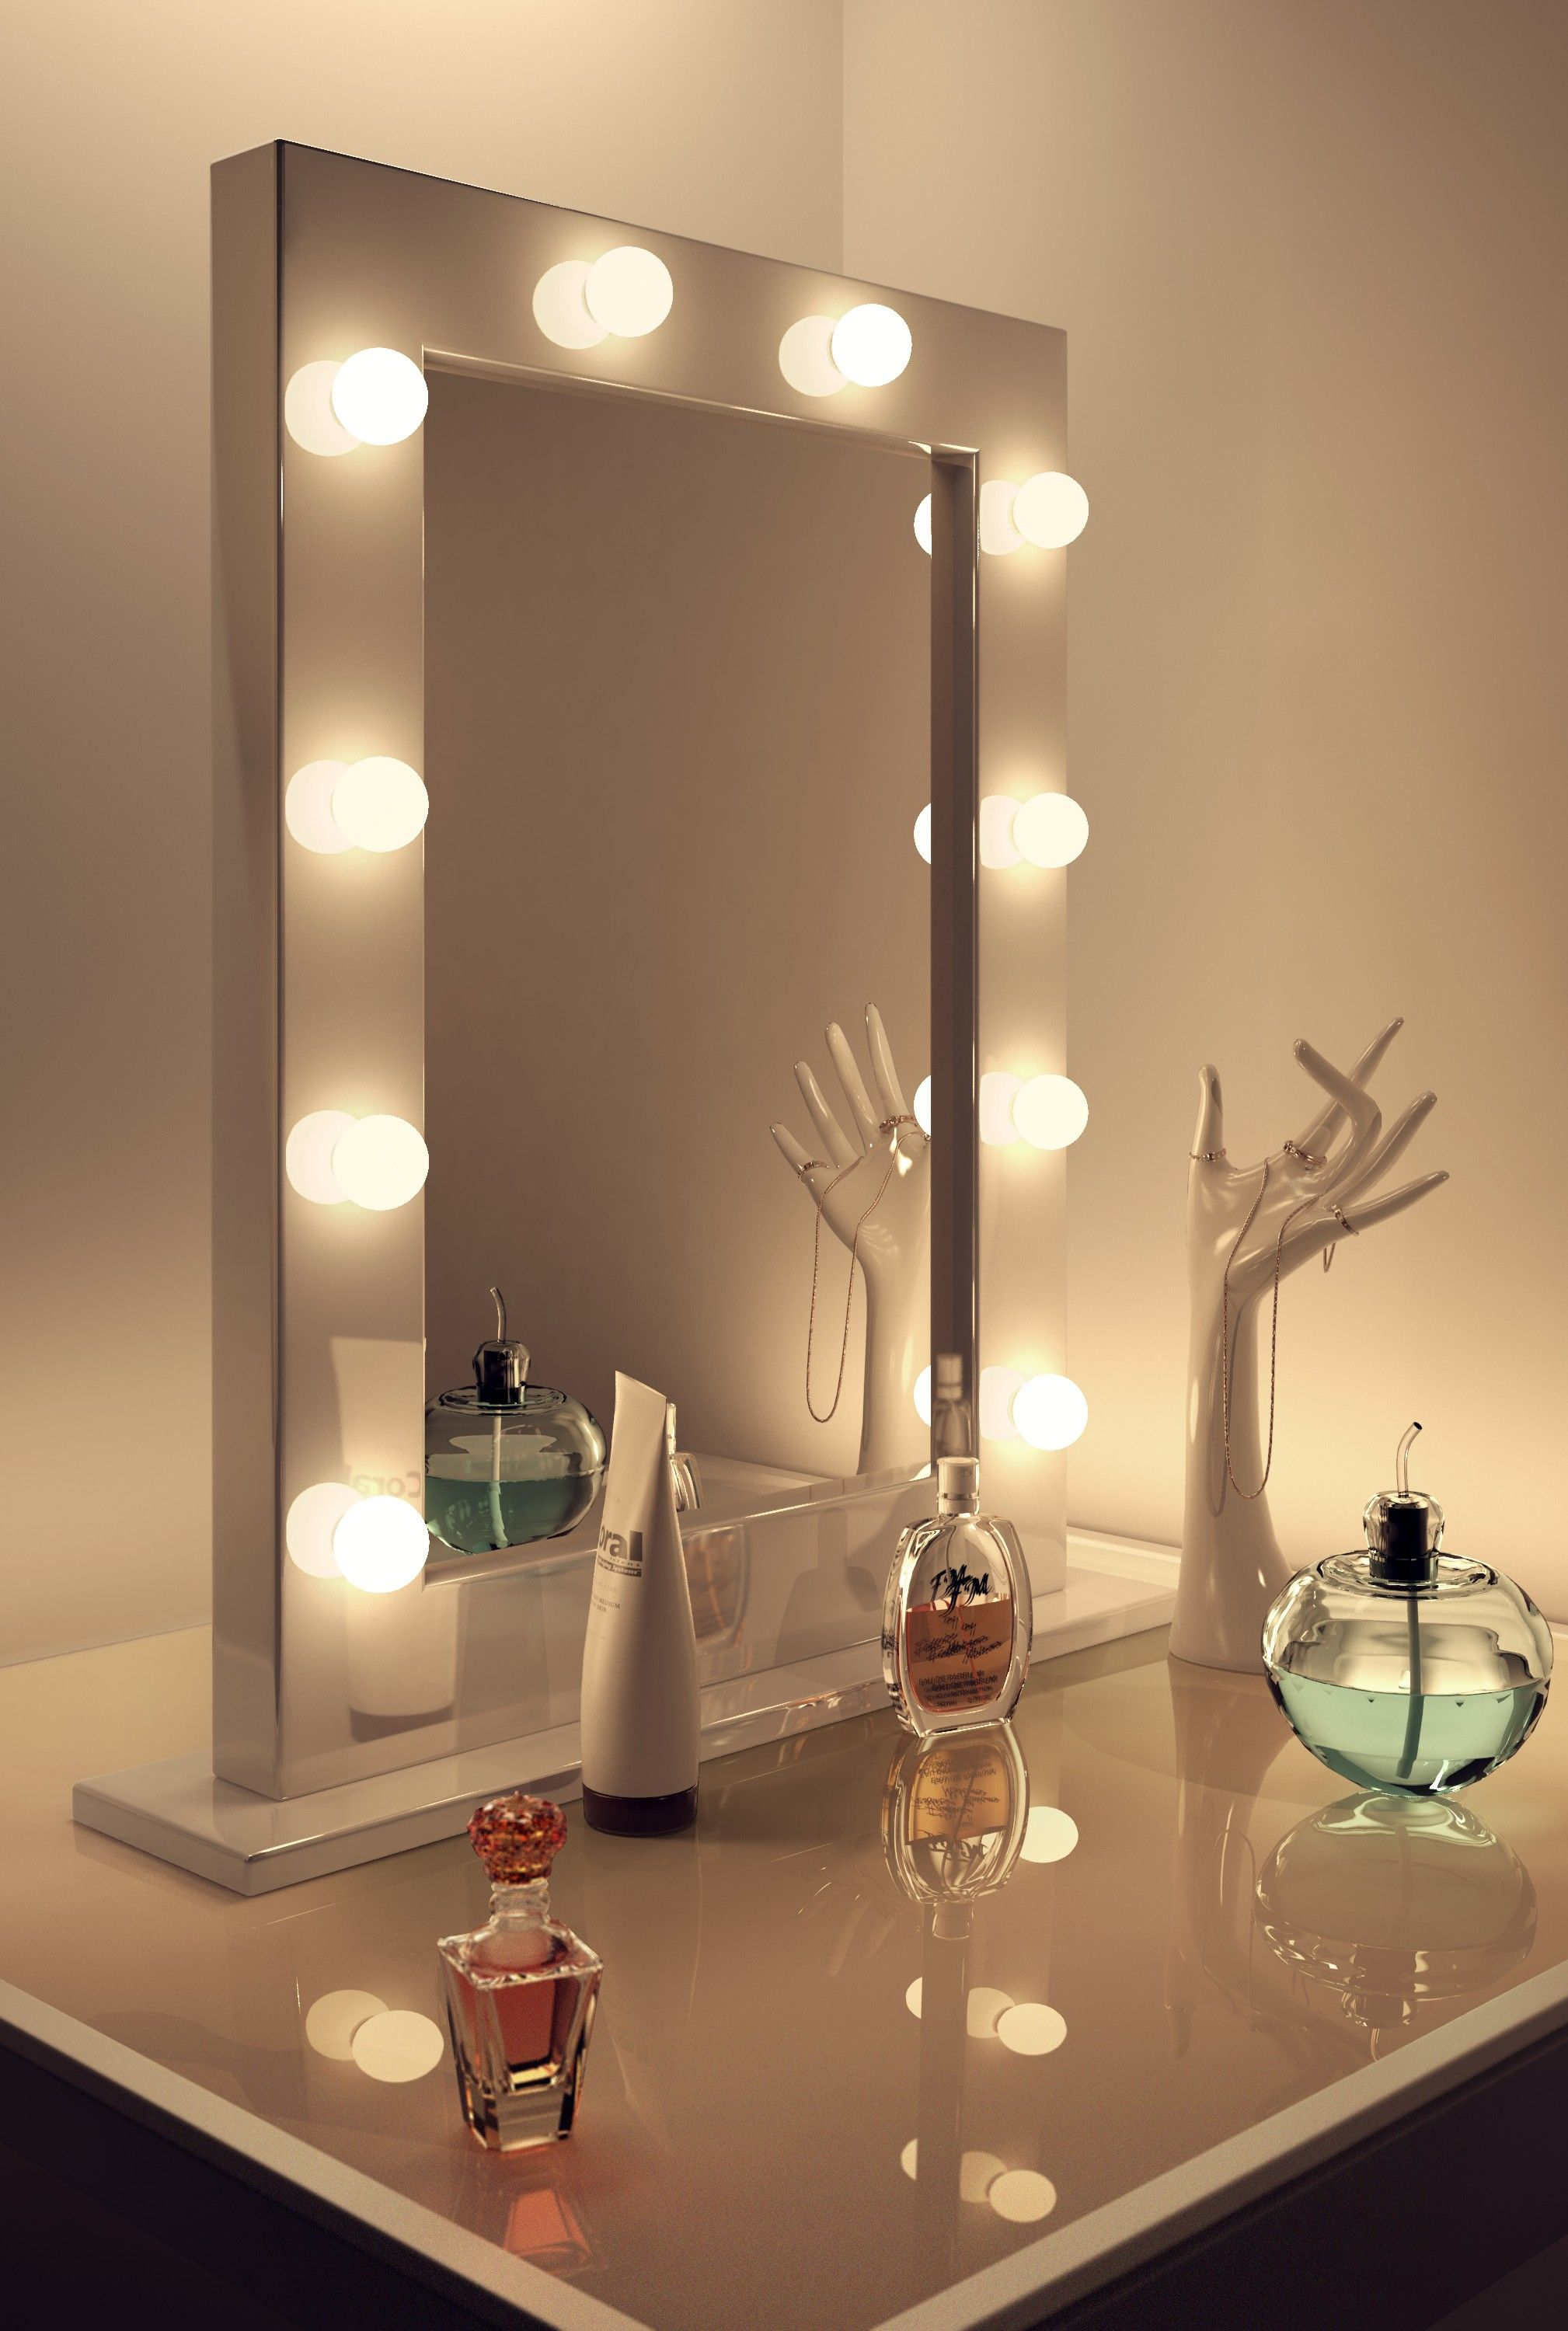 Bathroom Accessories For Beautify Using Lighted Vanity Mirror Ideas